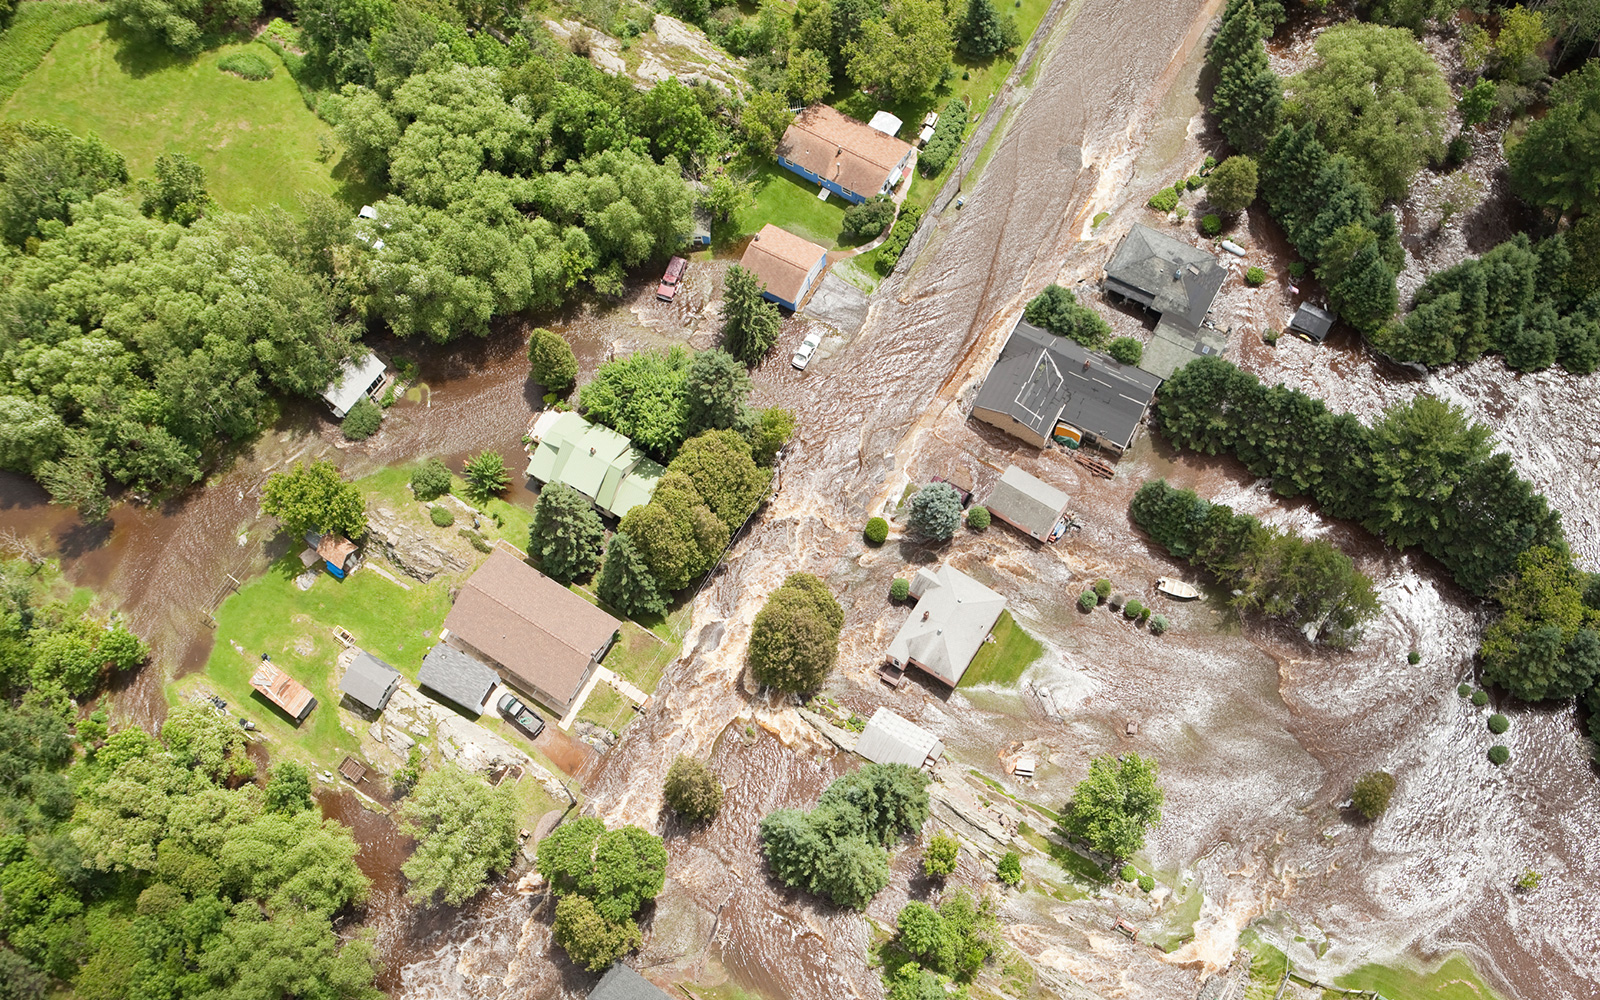 Aerial view of flood waters surging through local area with residential streets and homes.